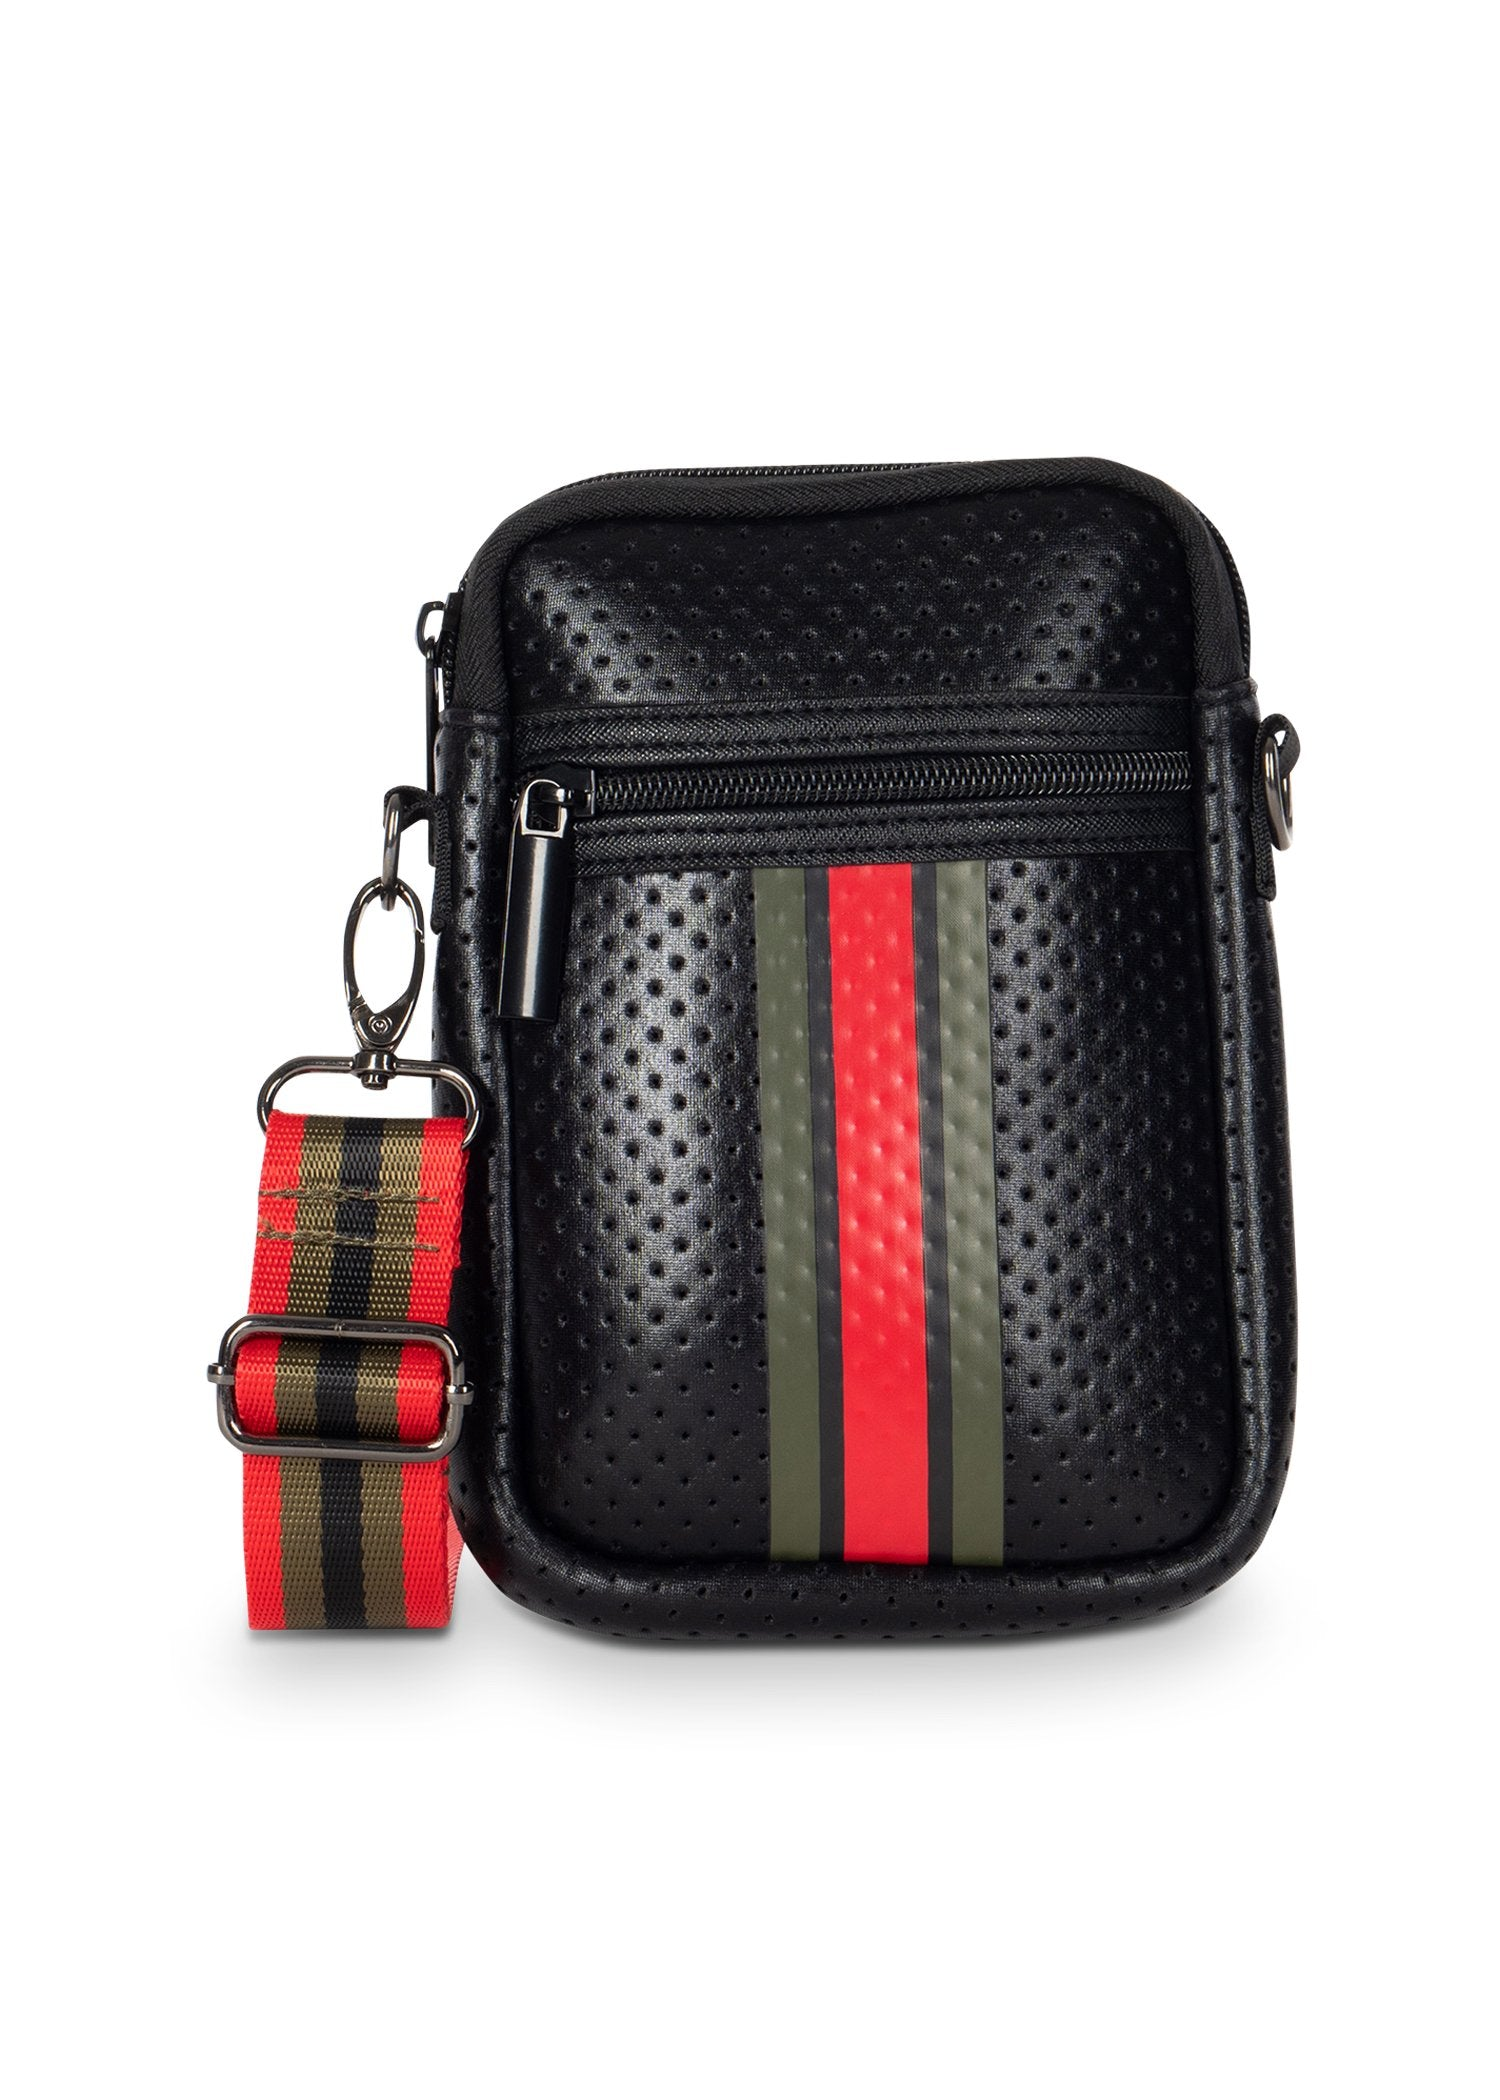 Casey Cell Phone Crossbody Bag | Bello - Susie O's Handbags